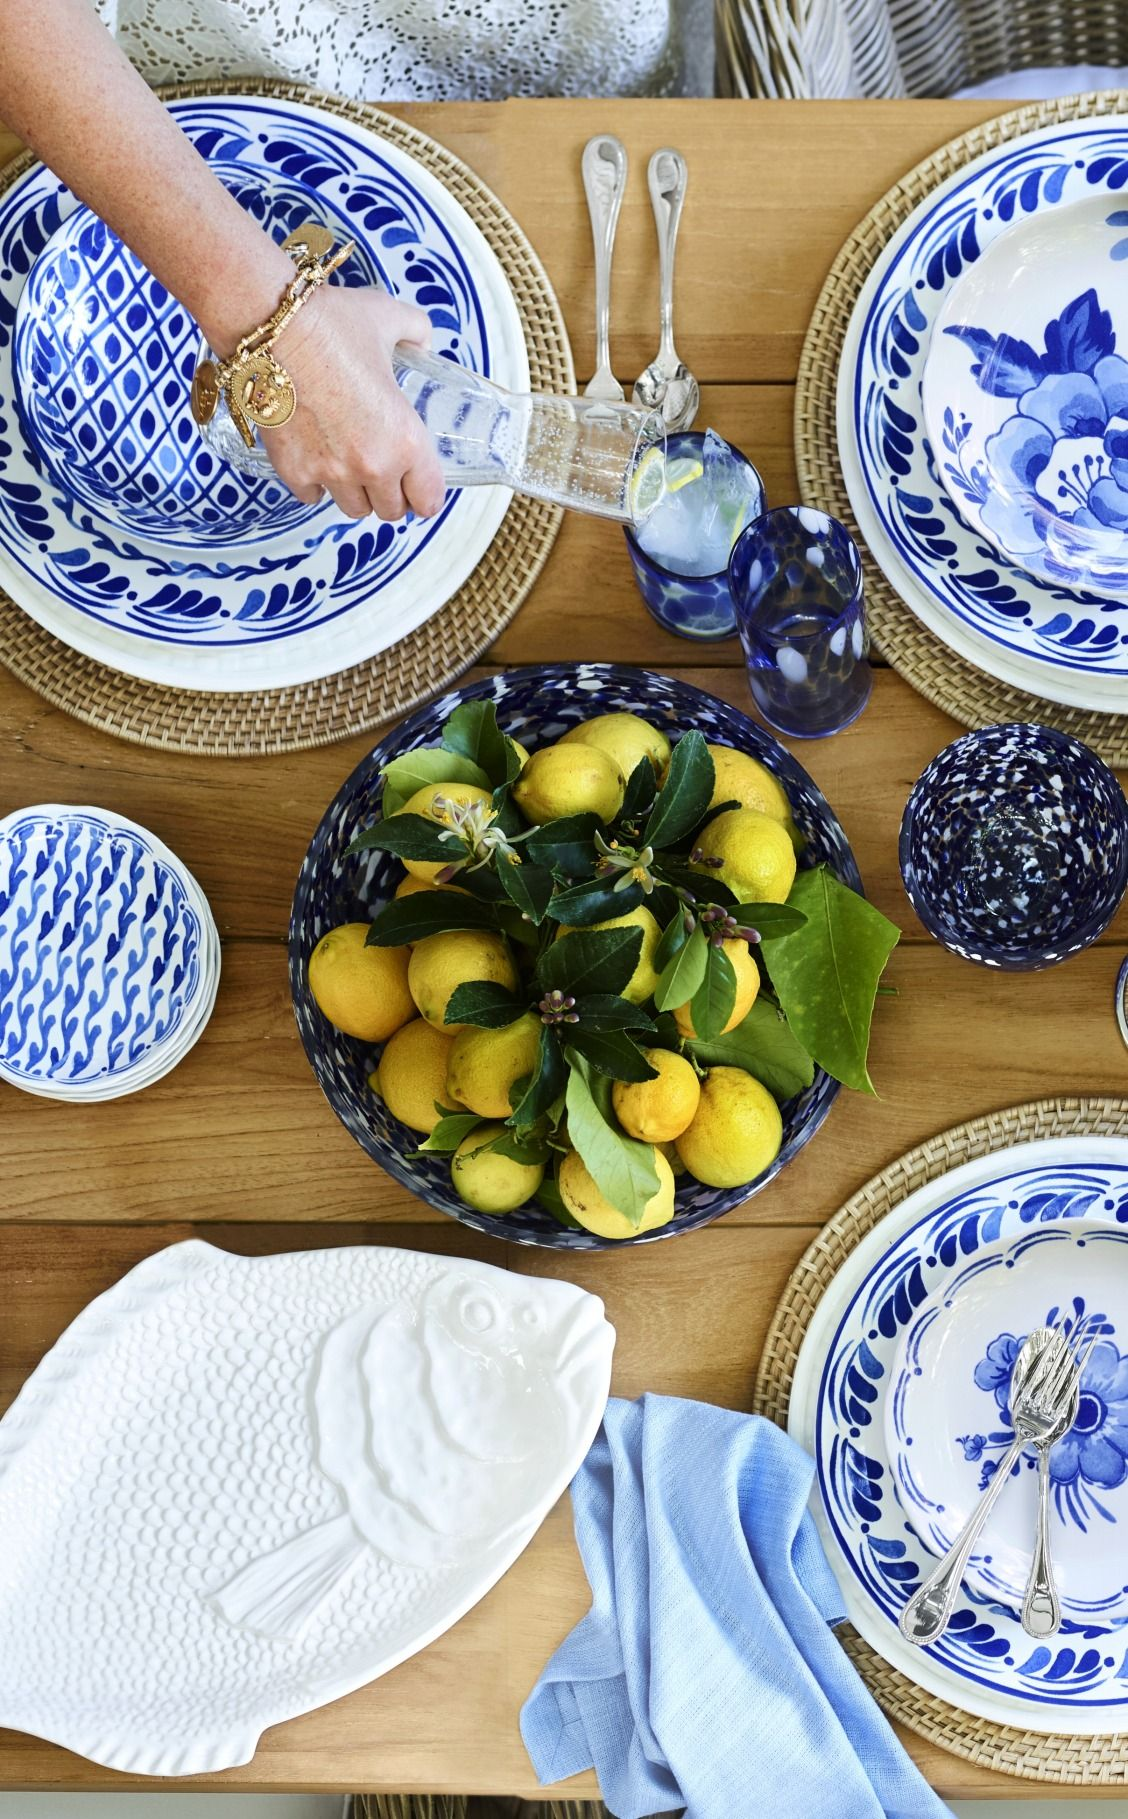 Williams Sonoma Just Released The Most Amazing Collab. Blue Dinner PlatesBlue ... & Williams Sonoma Just Released The Most Amazing Collab | Napkins ...